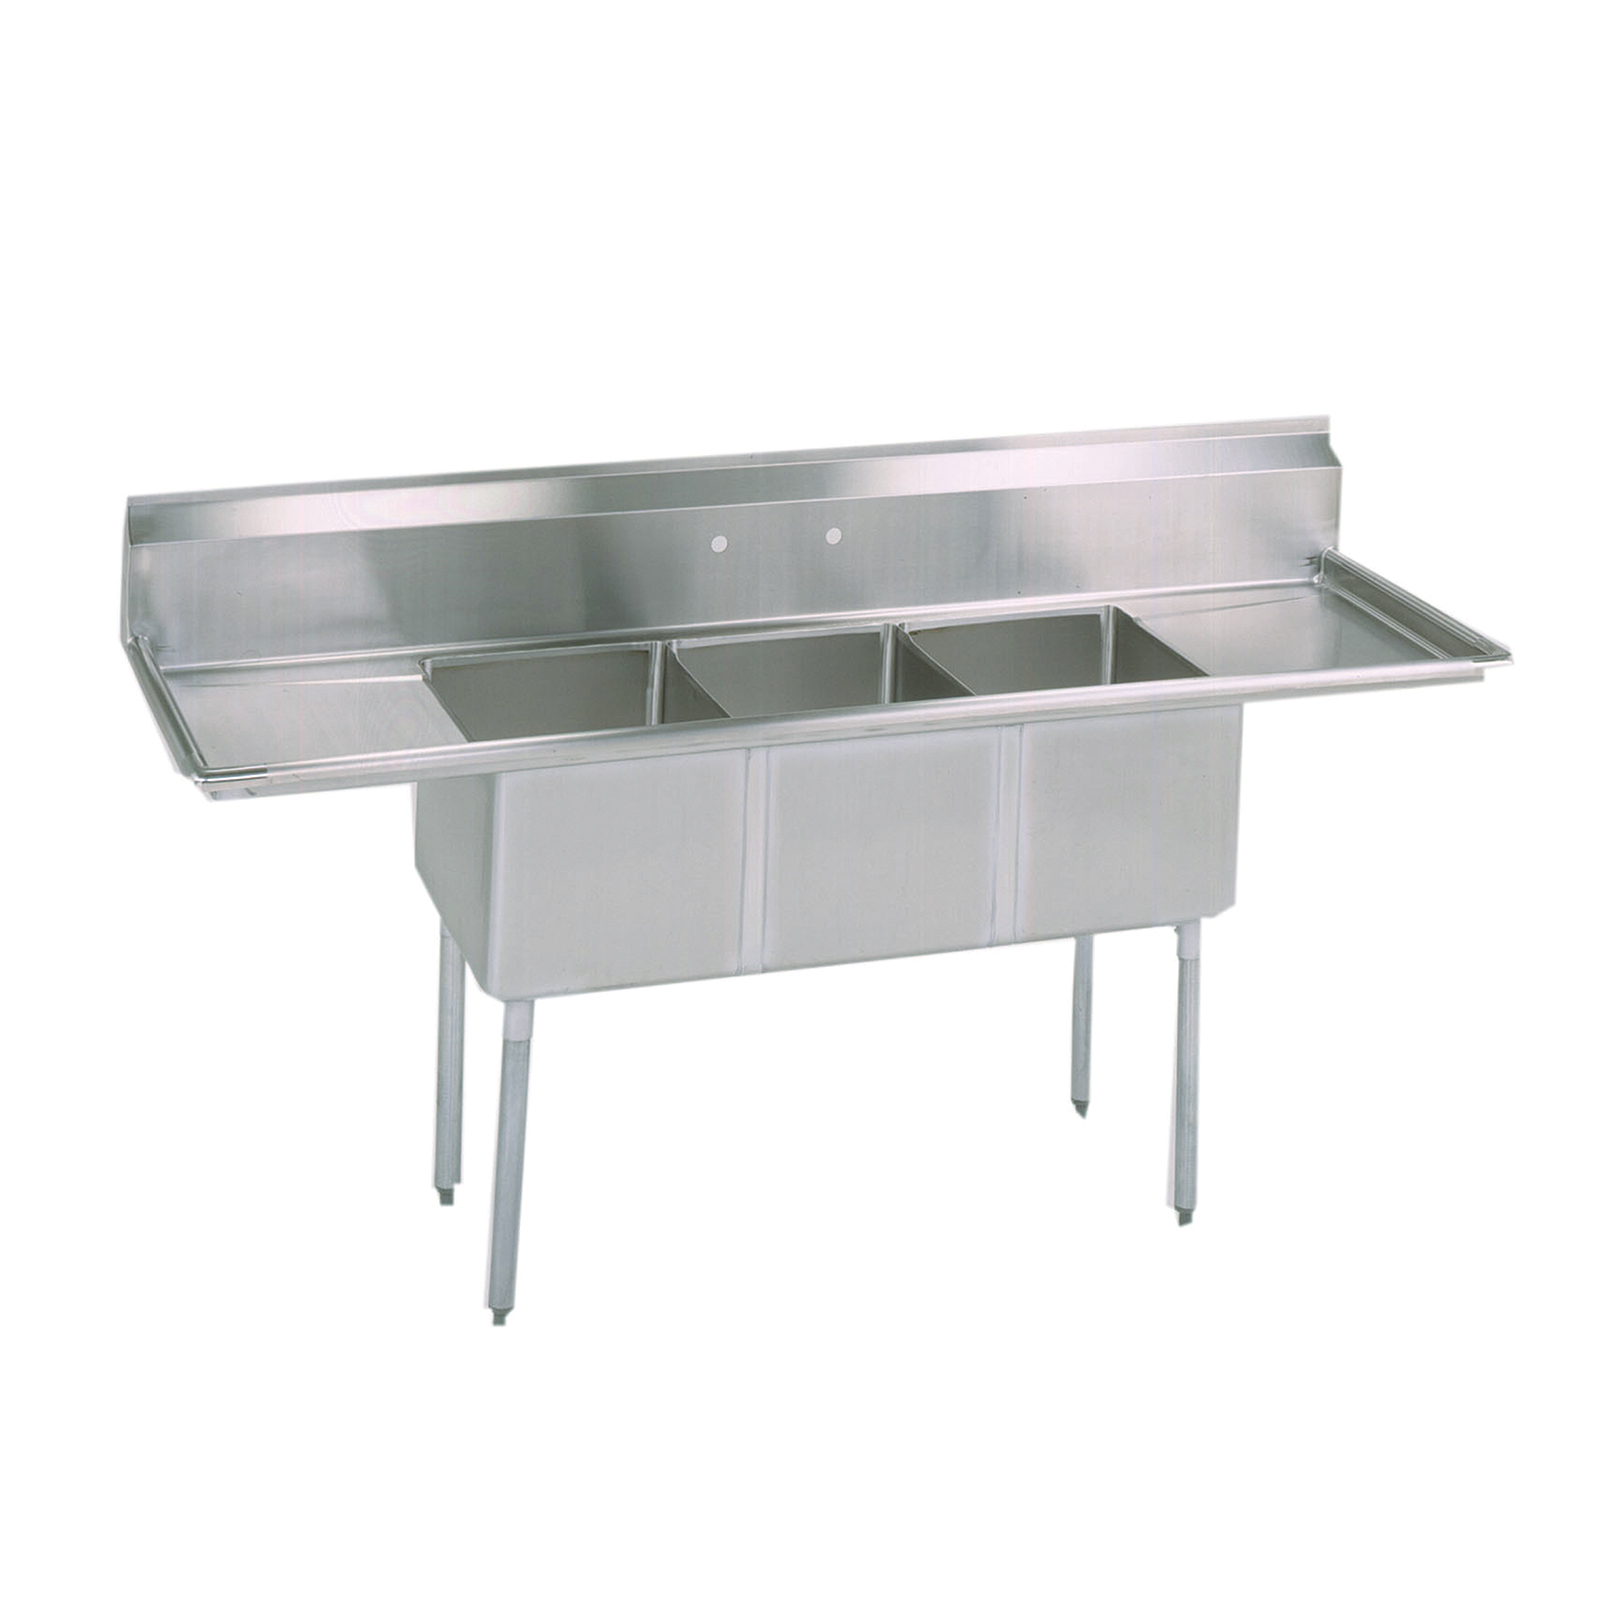 BK Resources BKS-3-1620-14-18TS sink, (3) three compartment